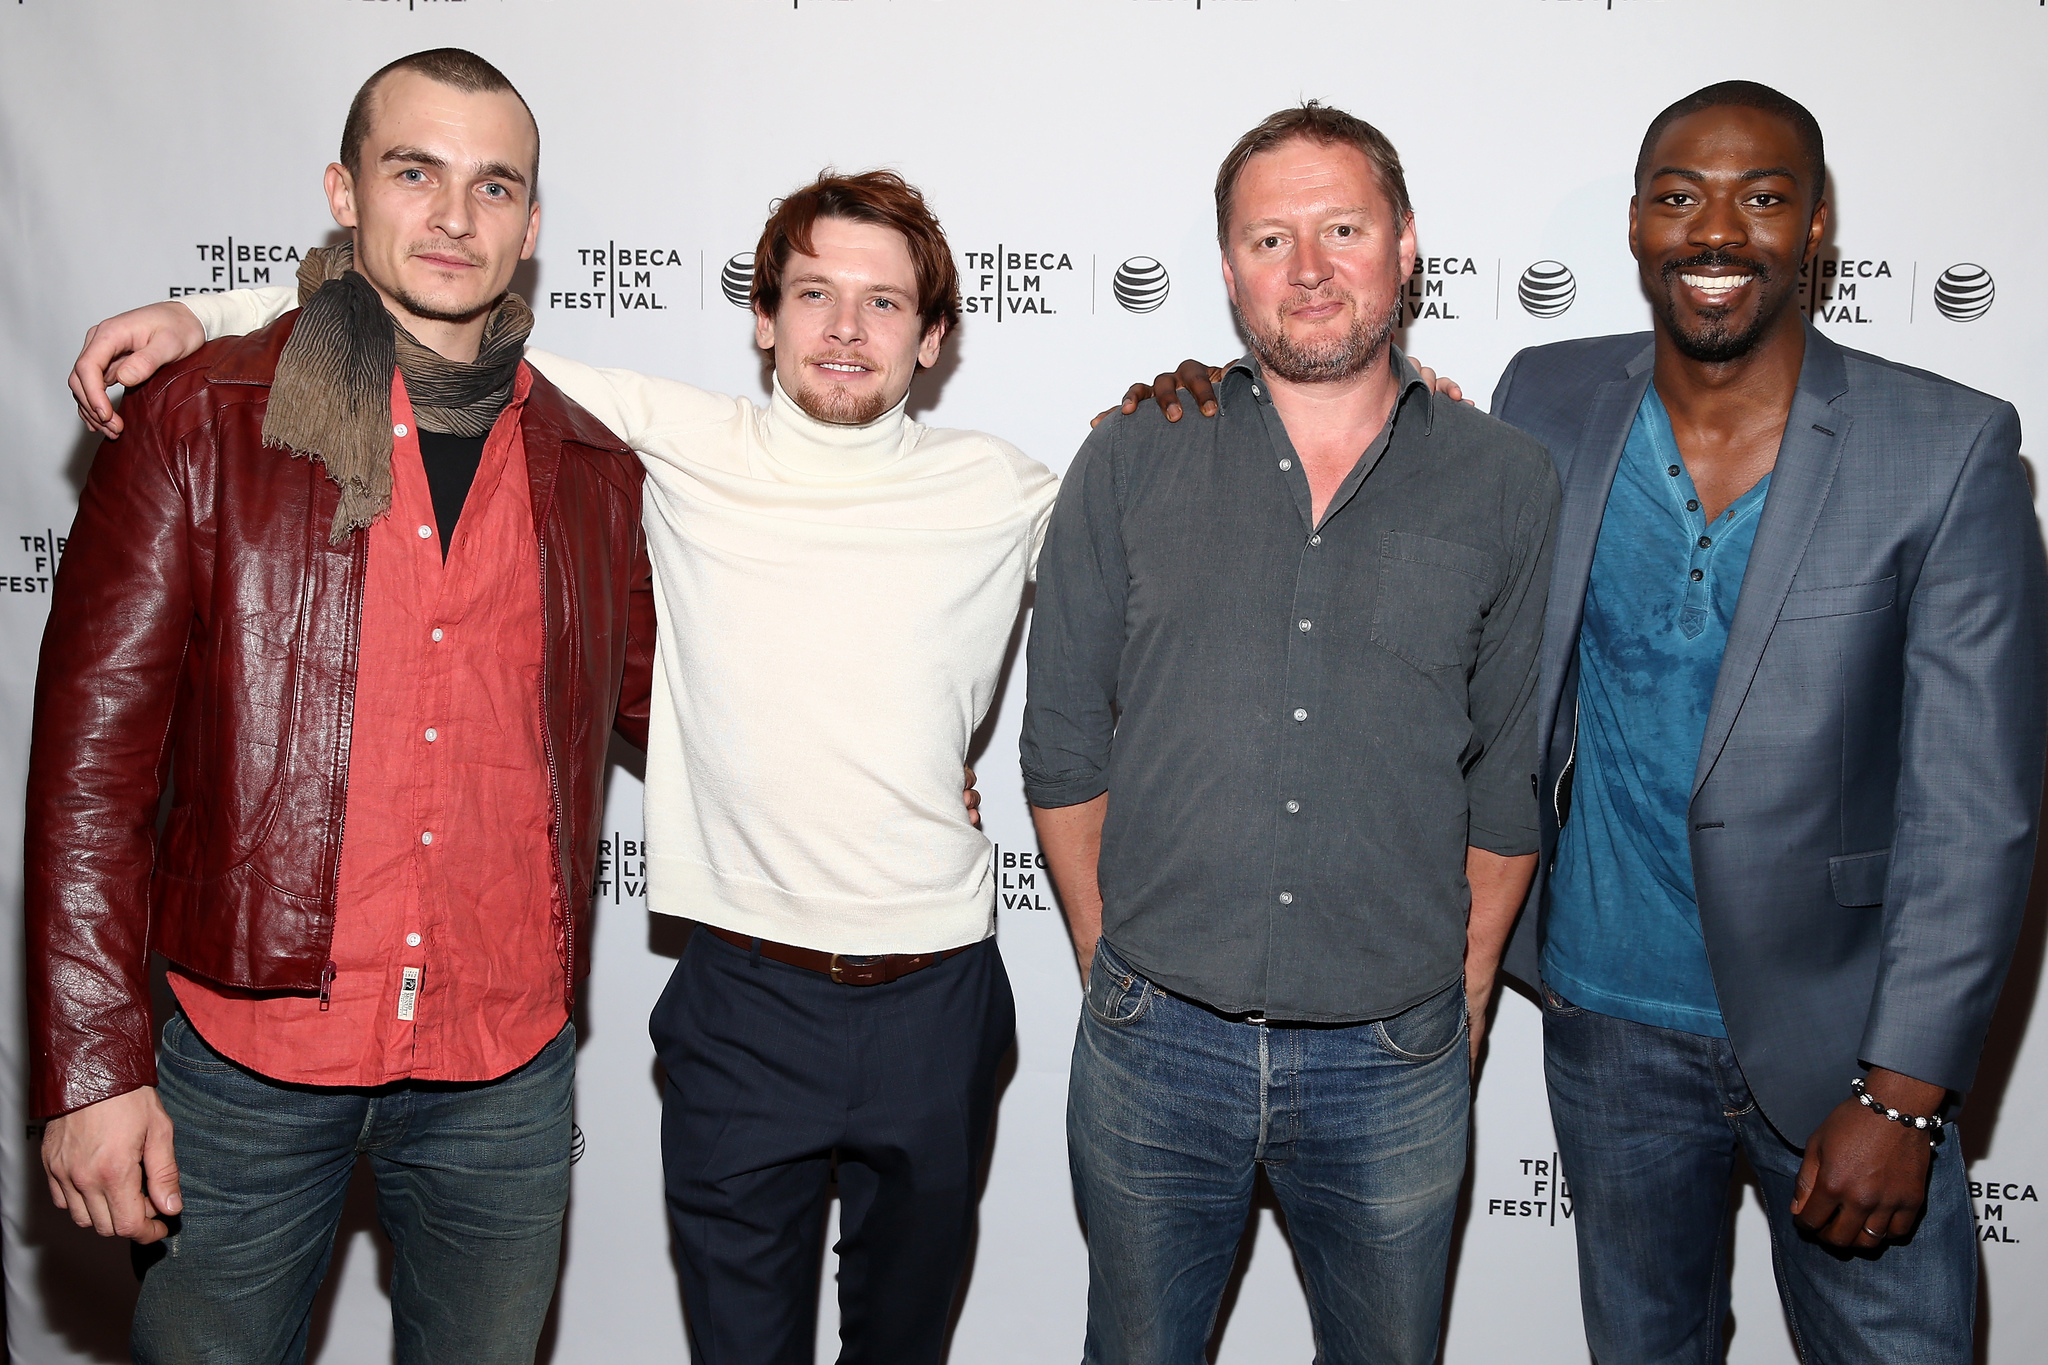 David Mackenzie, Rupert Friend, Jack O'Connell and David Ajala photo #540461